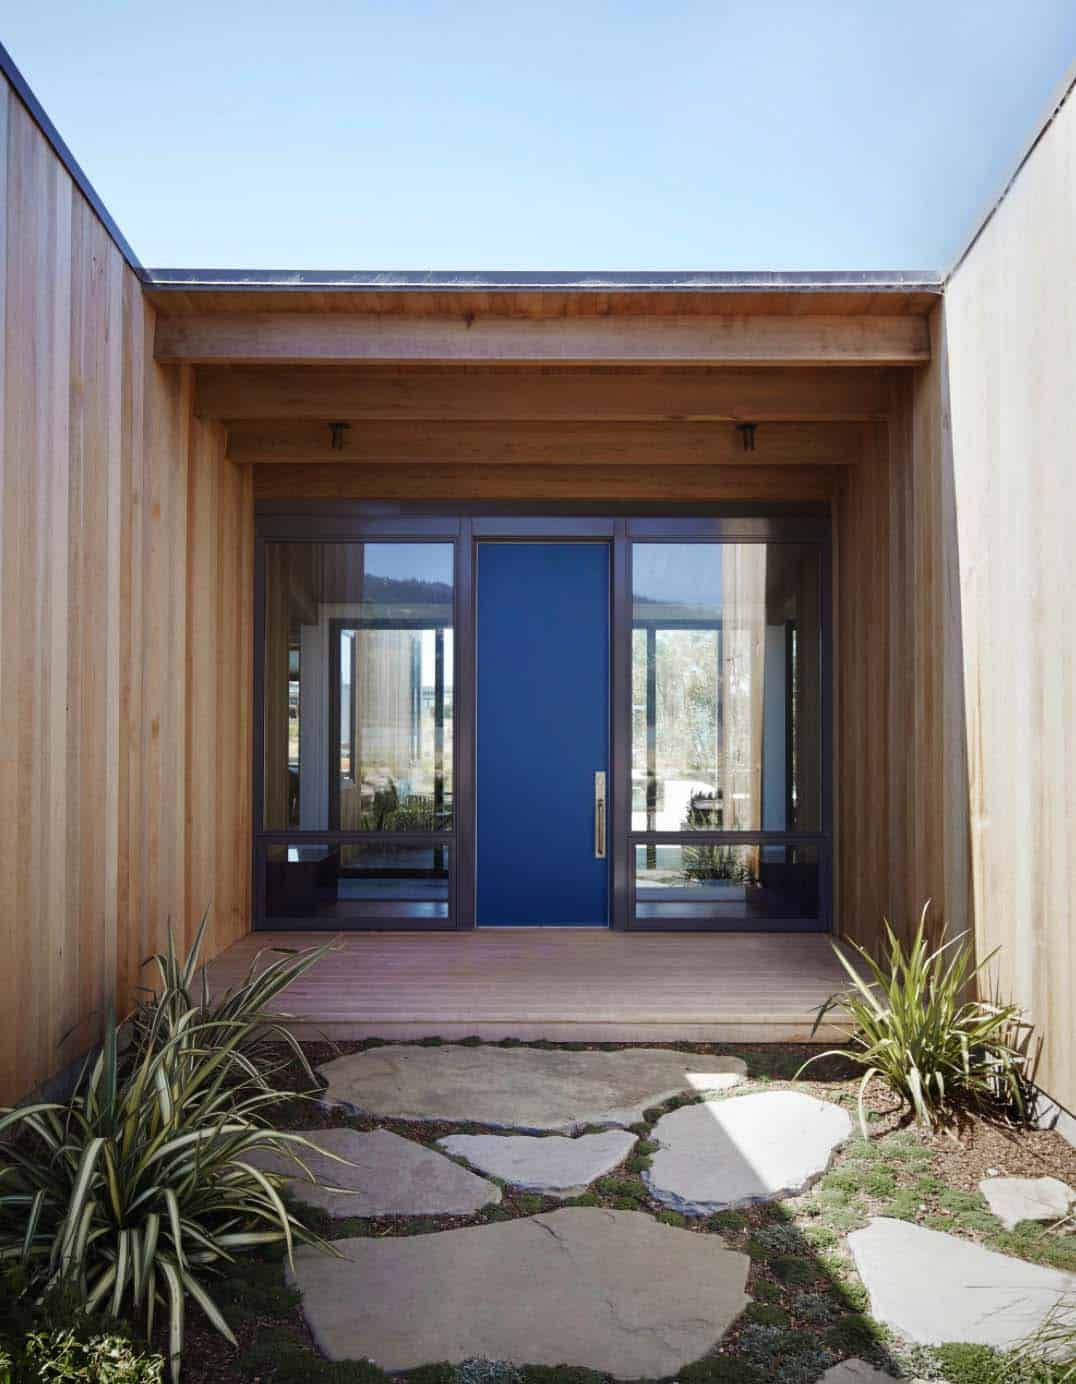 stinson-beach-lagoon-residence-turnbull-griffin-haesloop-04-1-kindesign